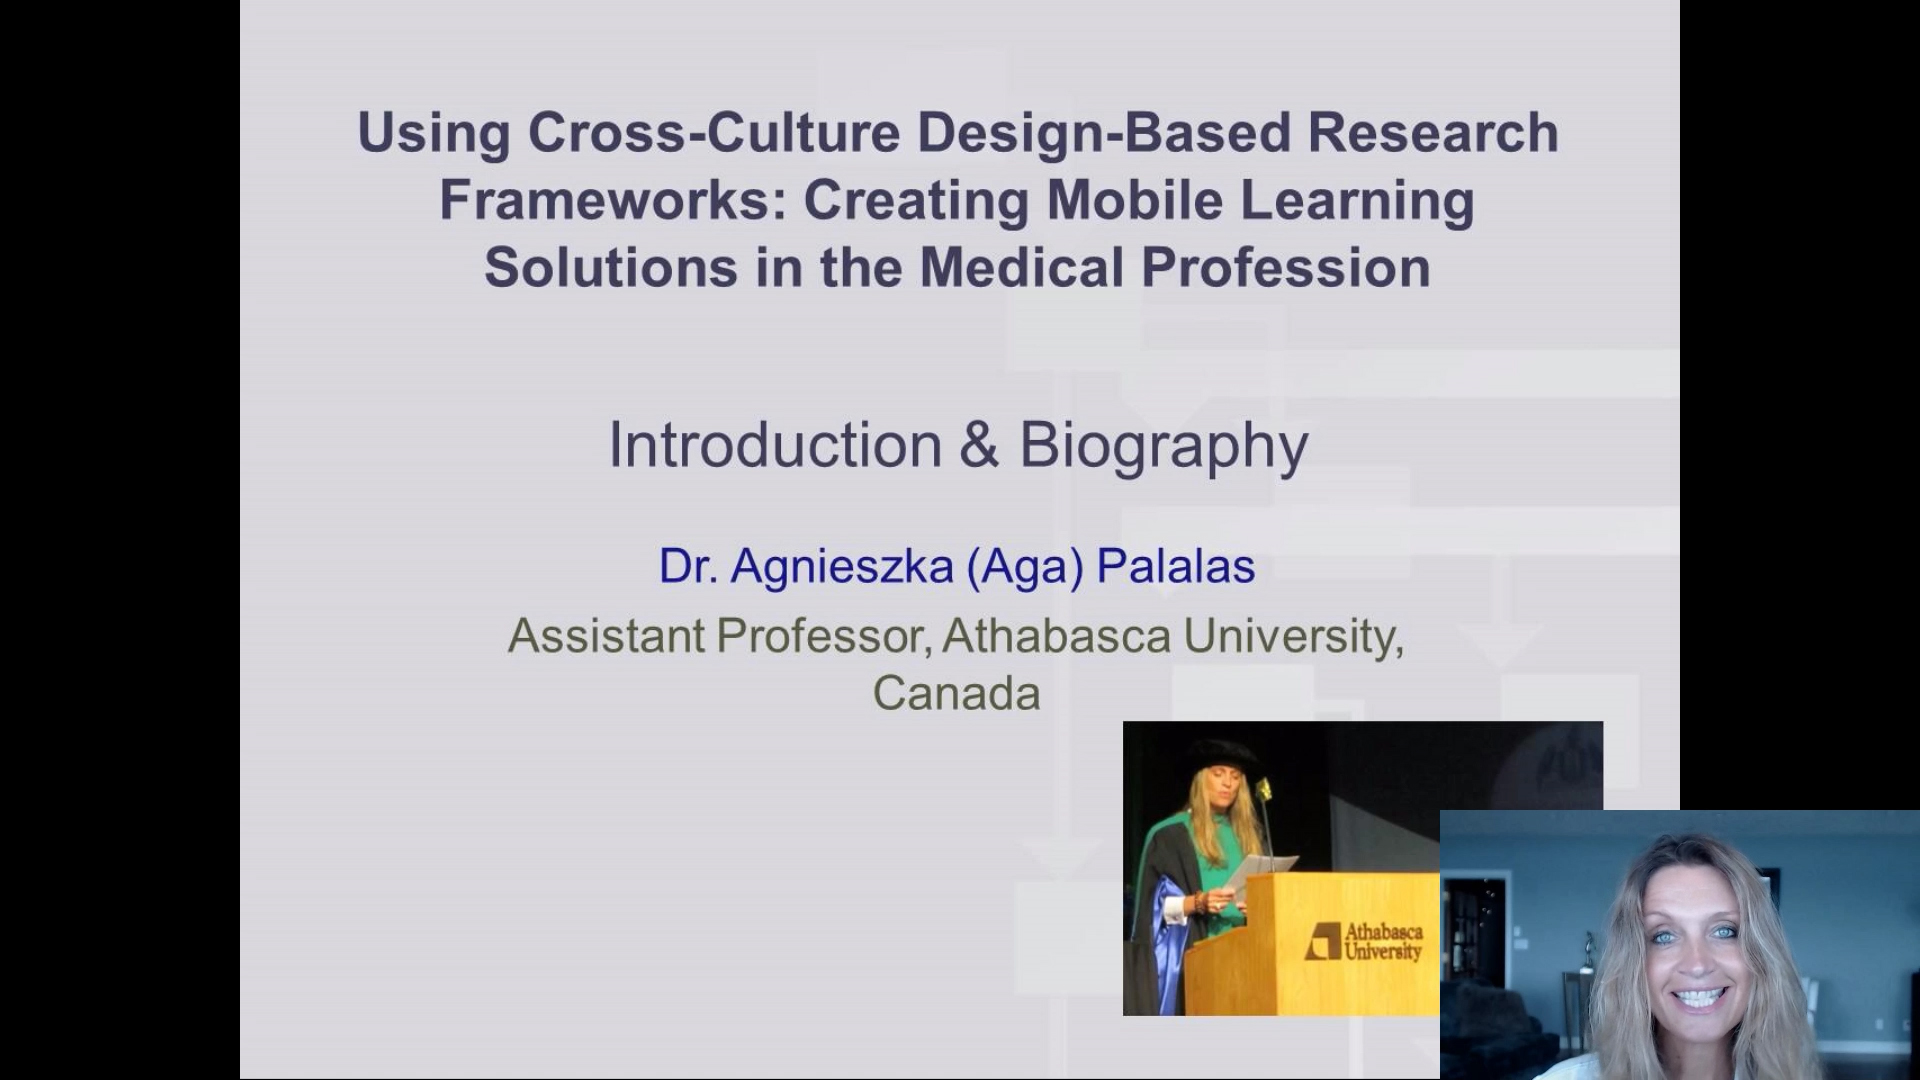 Using Cross-Culture Design-Based Research Frameworks: Creating Mobile Learning Solutions in the Medical Profession